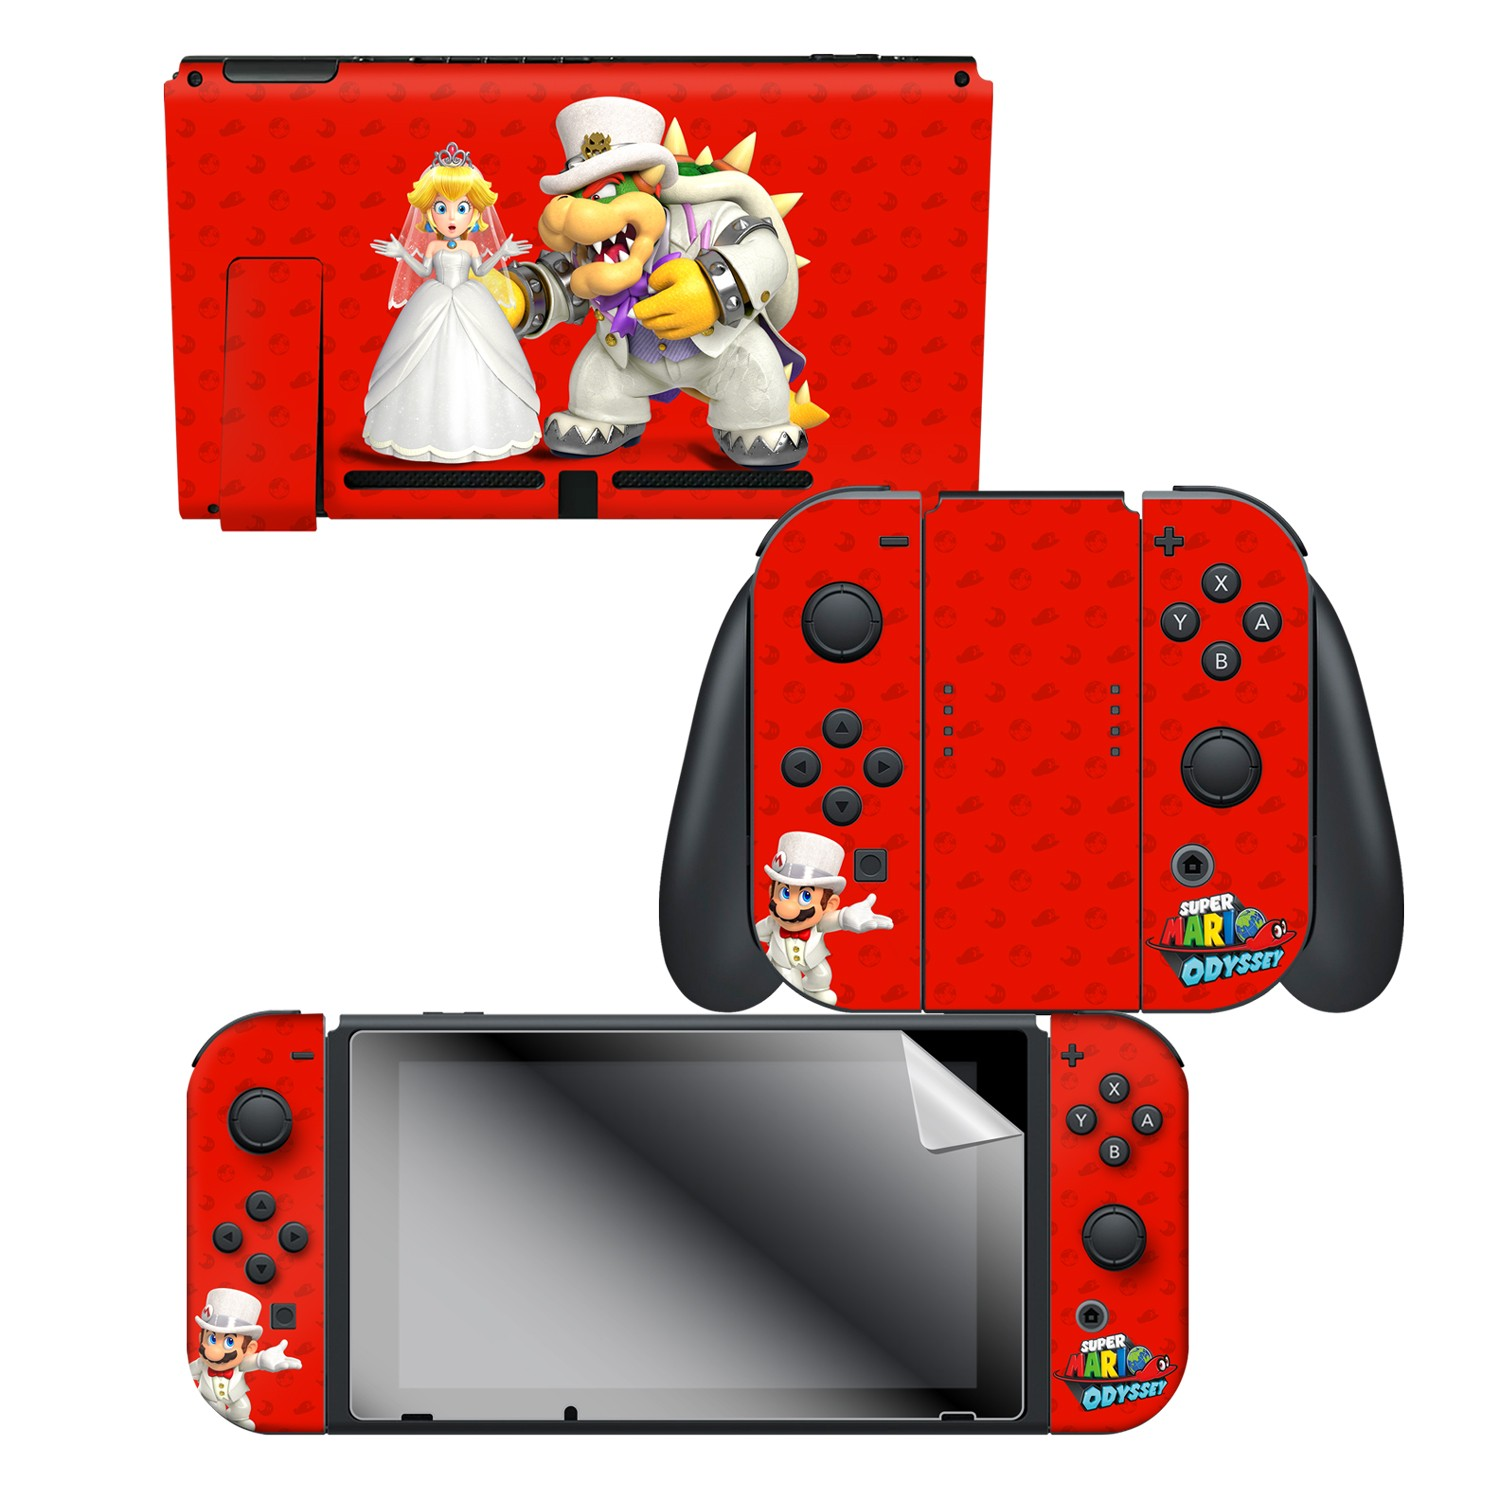 Super Mario Odyssey Wedding Nintendo Switch Console Skin Joy Con Skin Joy Con Grip Skin Screen Protector Bundle Assortment Officially